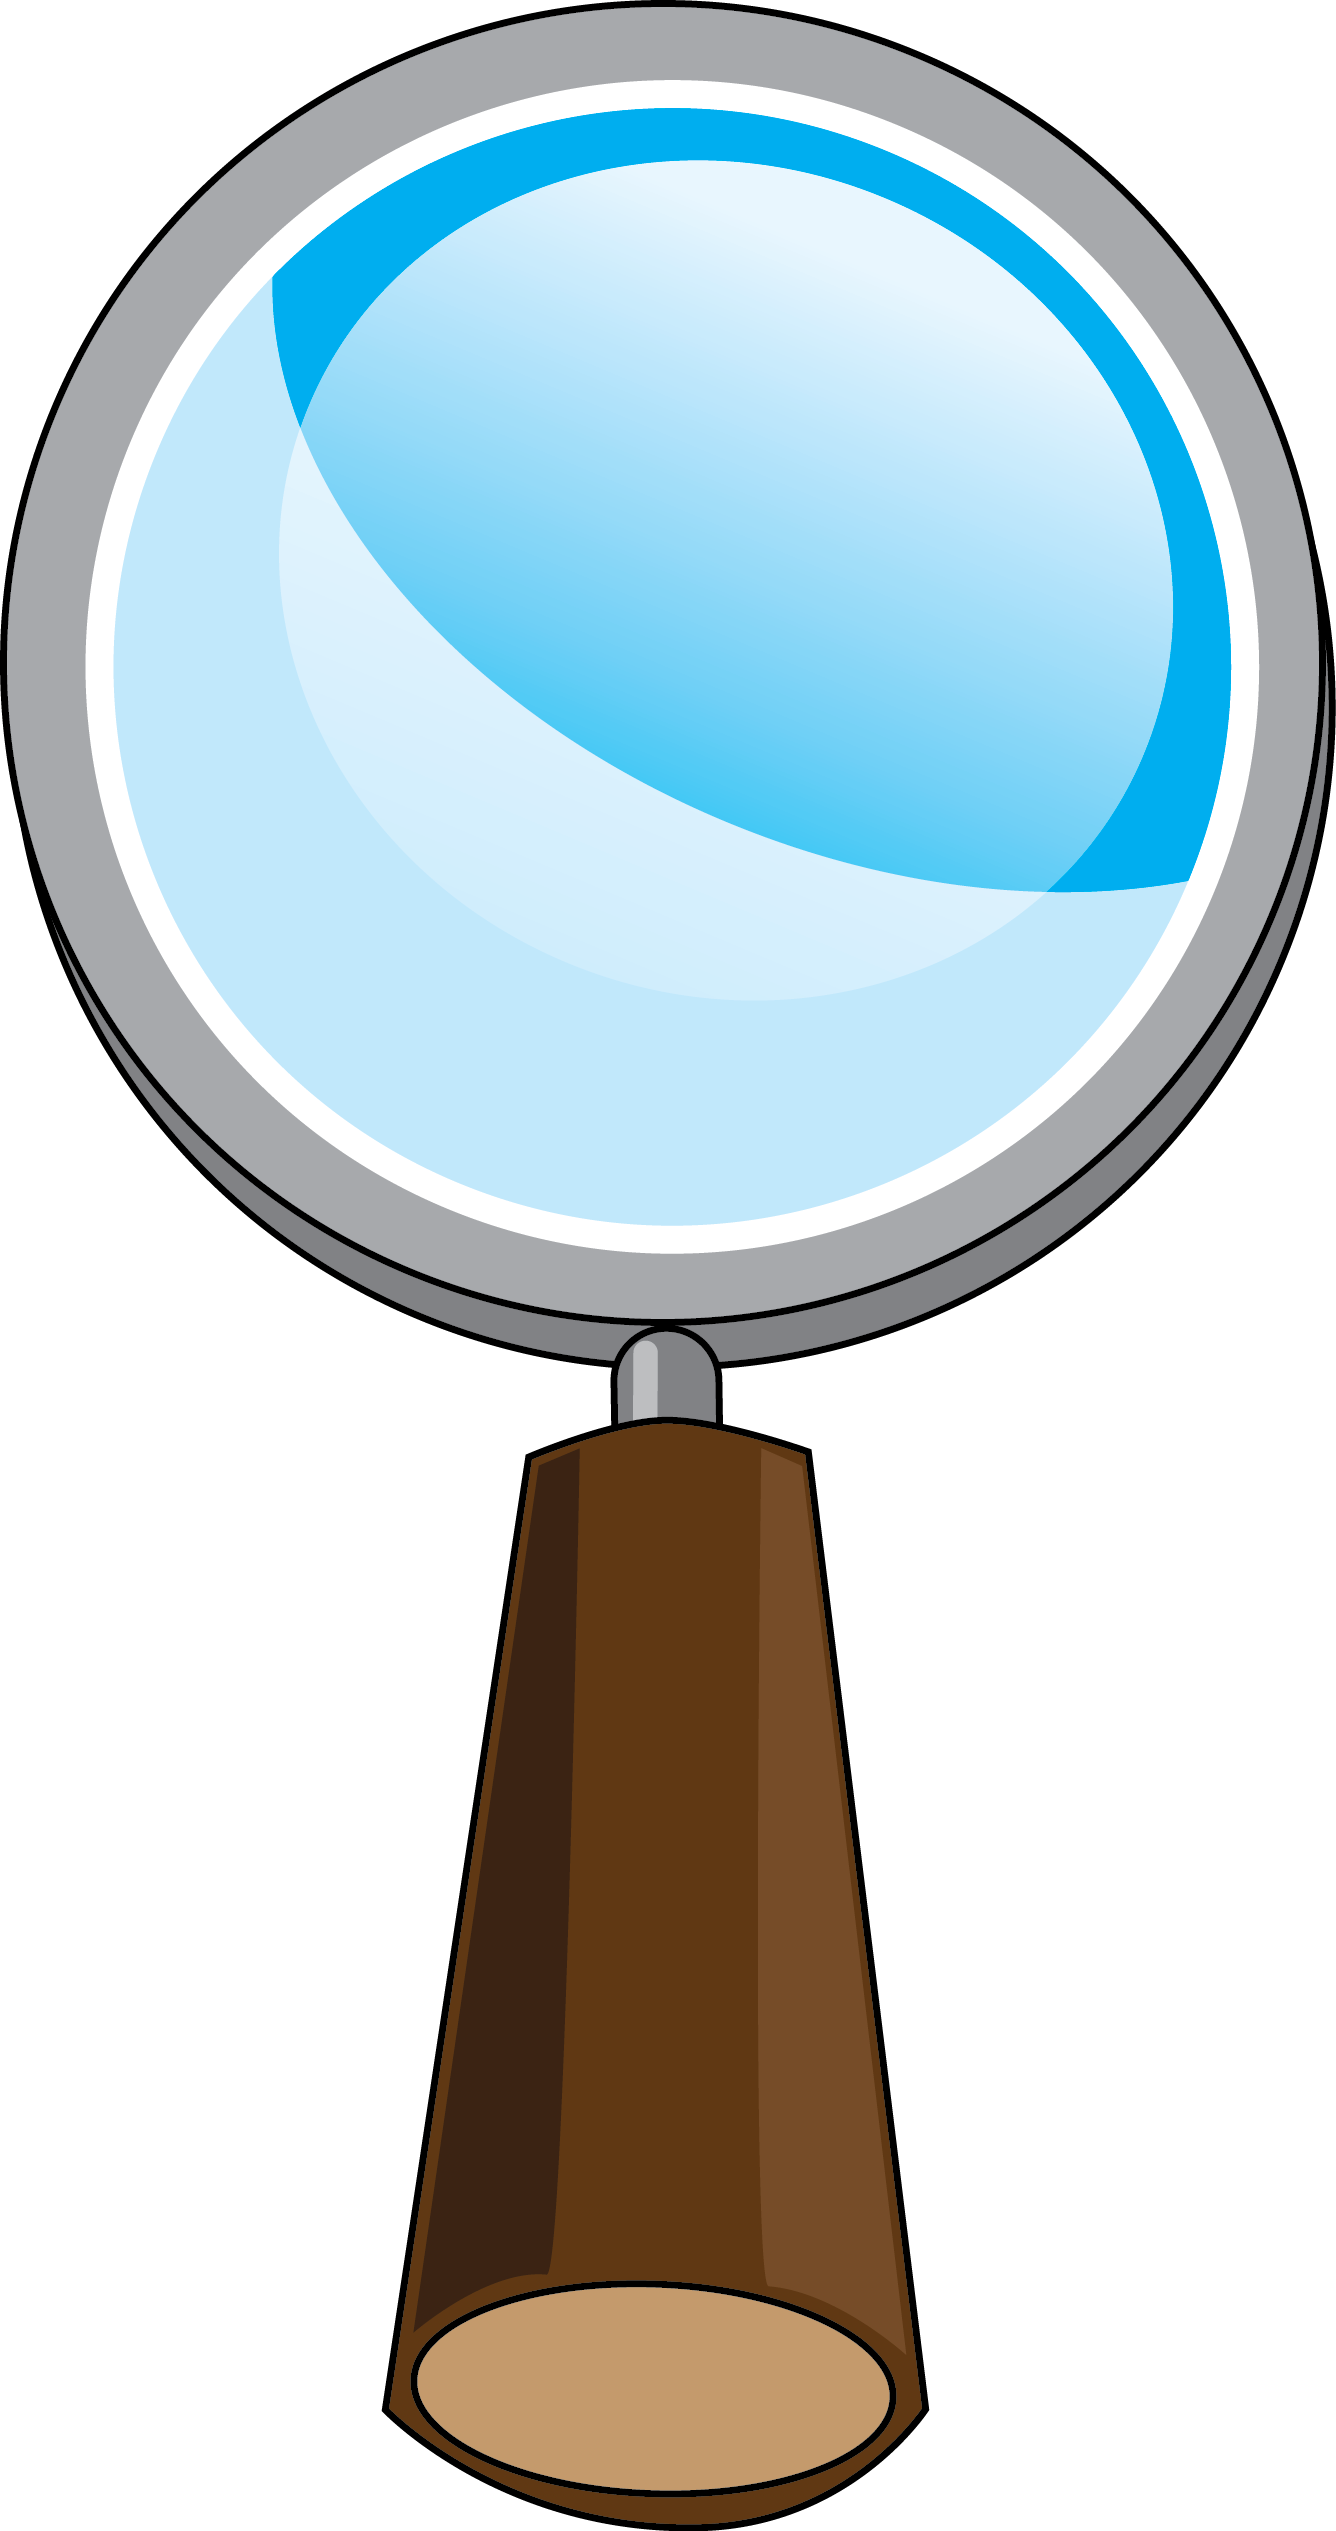 1336x2531 Cartoon Magnifying Glass Clipart